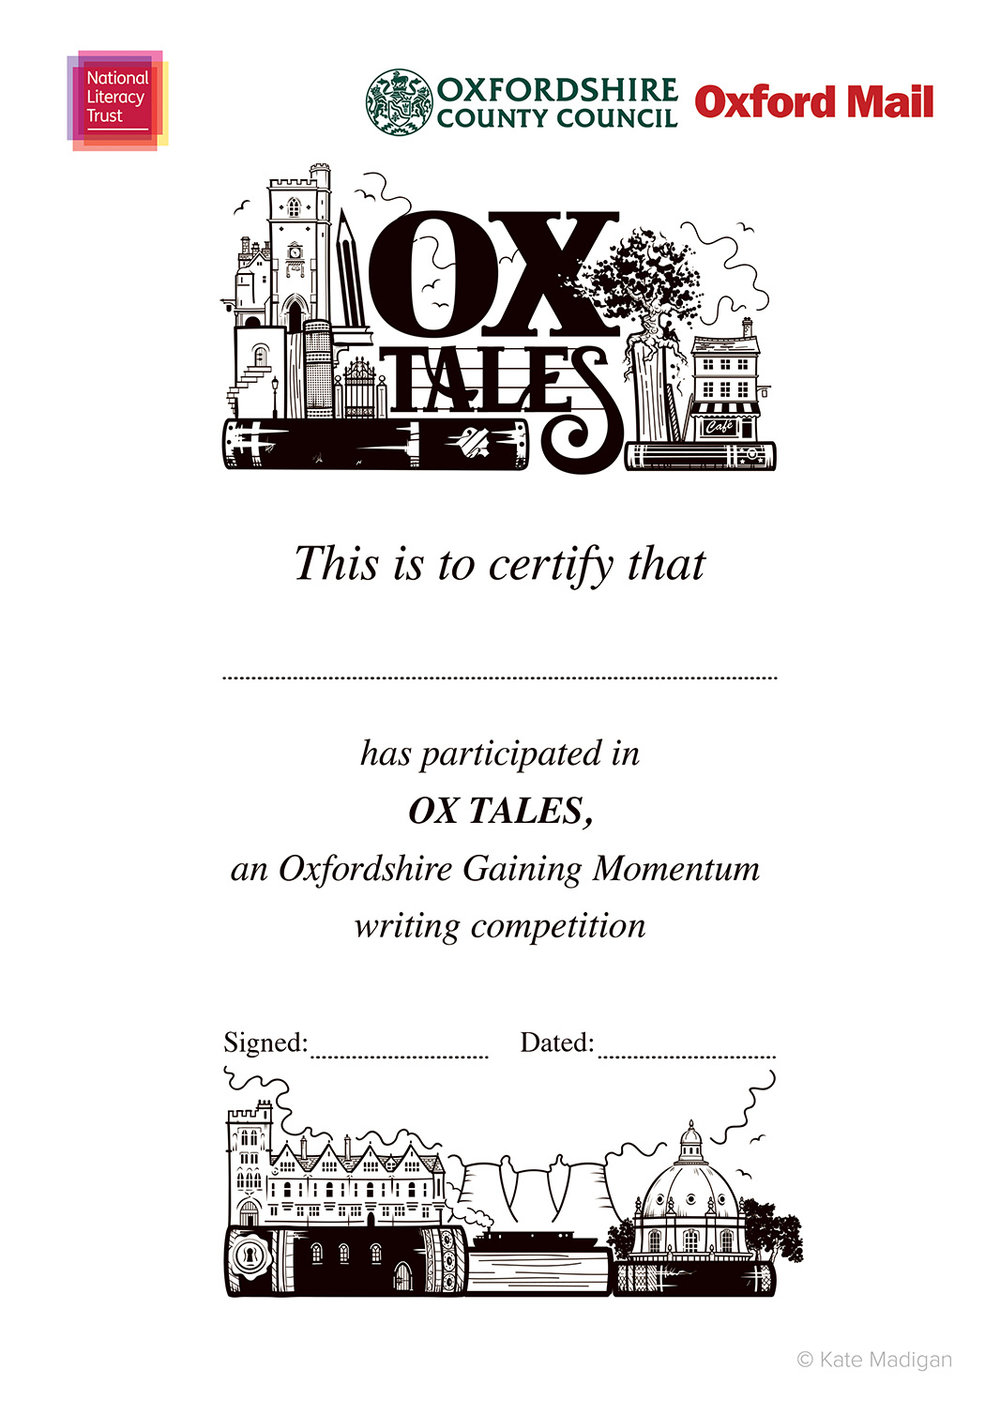 Participants' certificate design for the National Literacy Trust, featuring Oxfordshire landmarks (Carfax Tower, cafes, Brasenose College, Didcot Power Station, the Radcliffe Camera, a canal boat  ), books, pens, pencils, a tablet computer or phone   and decorative typography  . Copyright Kate Madigan.